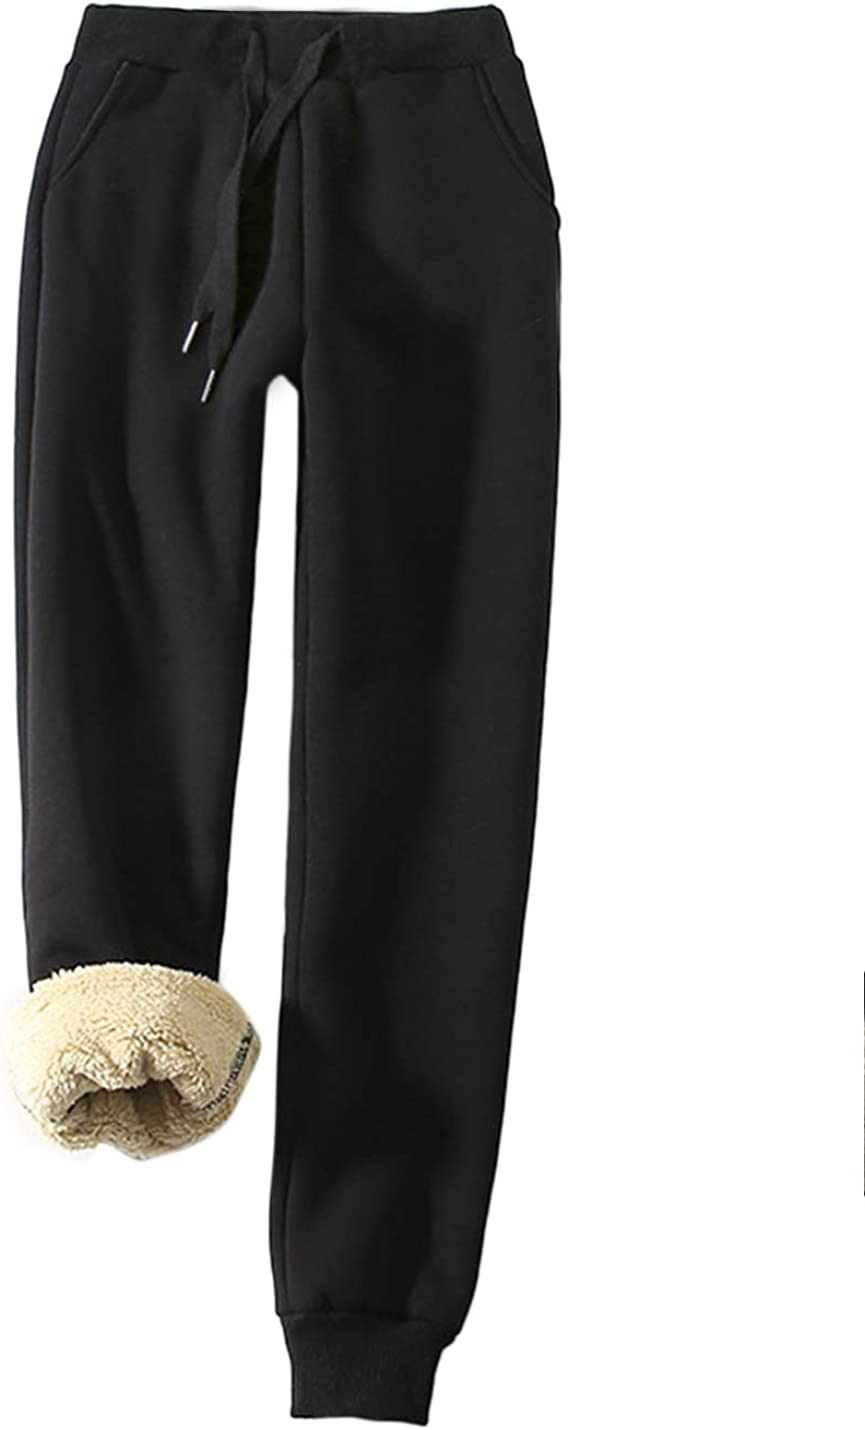 Yeokou Max 67% OFF Women's Warm Sherpa Lined Athletic Flee Sweatpants It is very popular Jogger